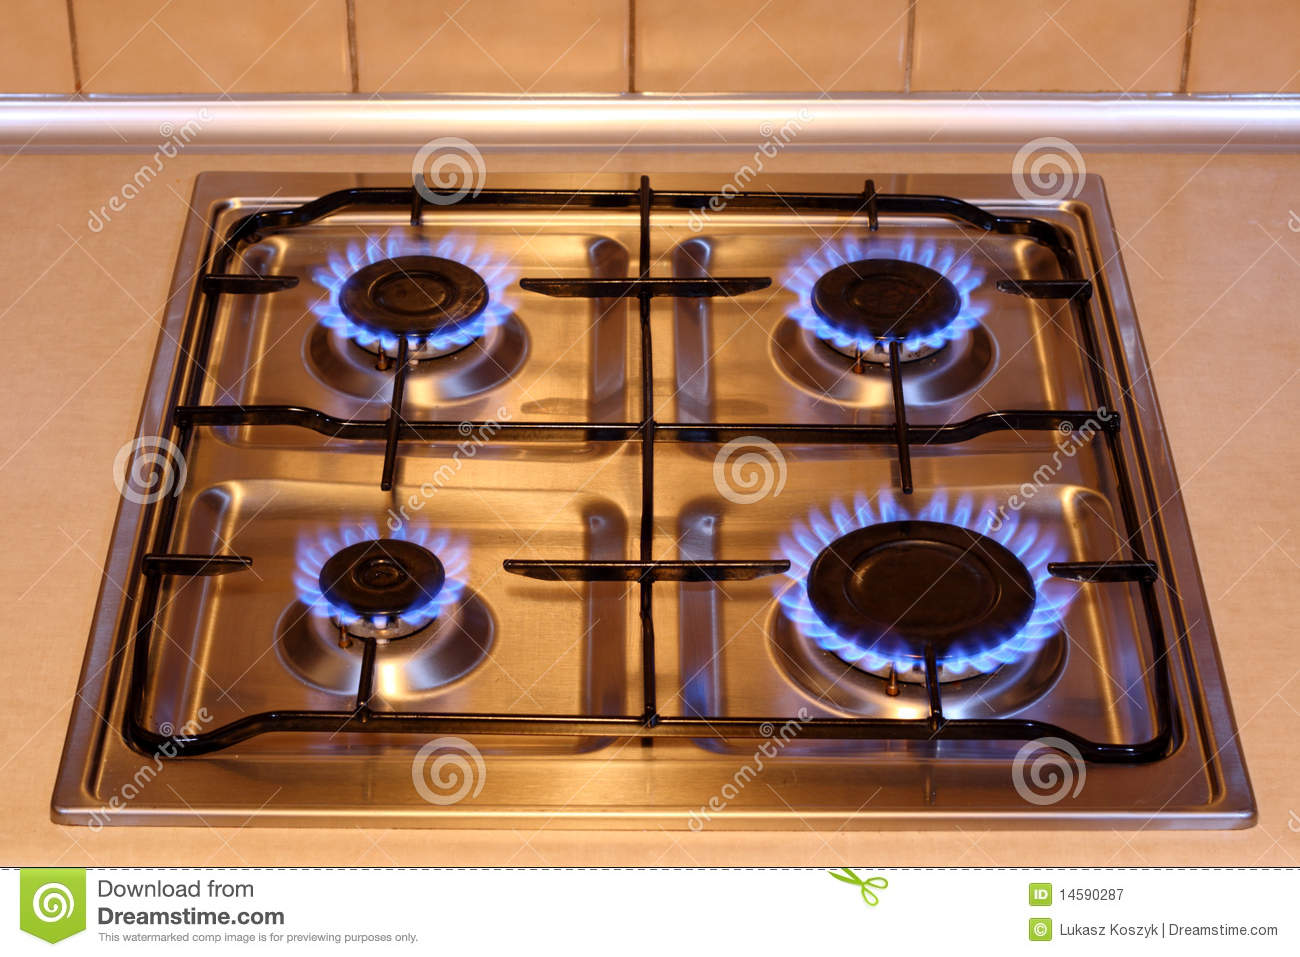 Orange flame on gas stove